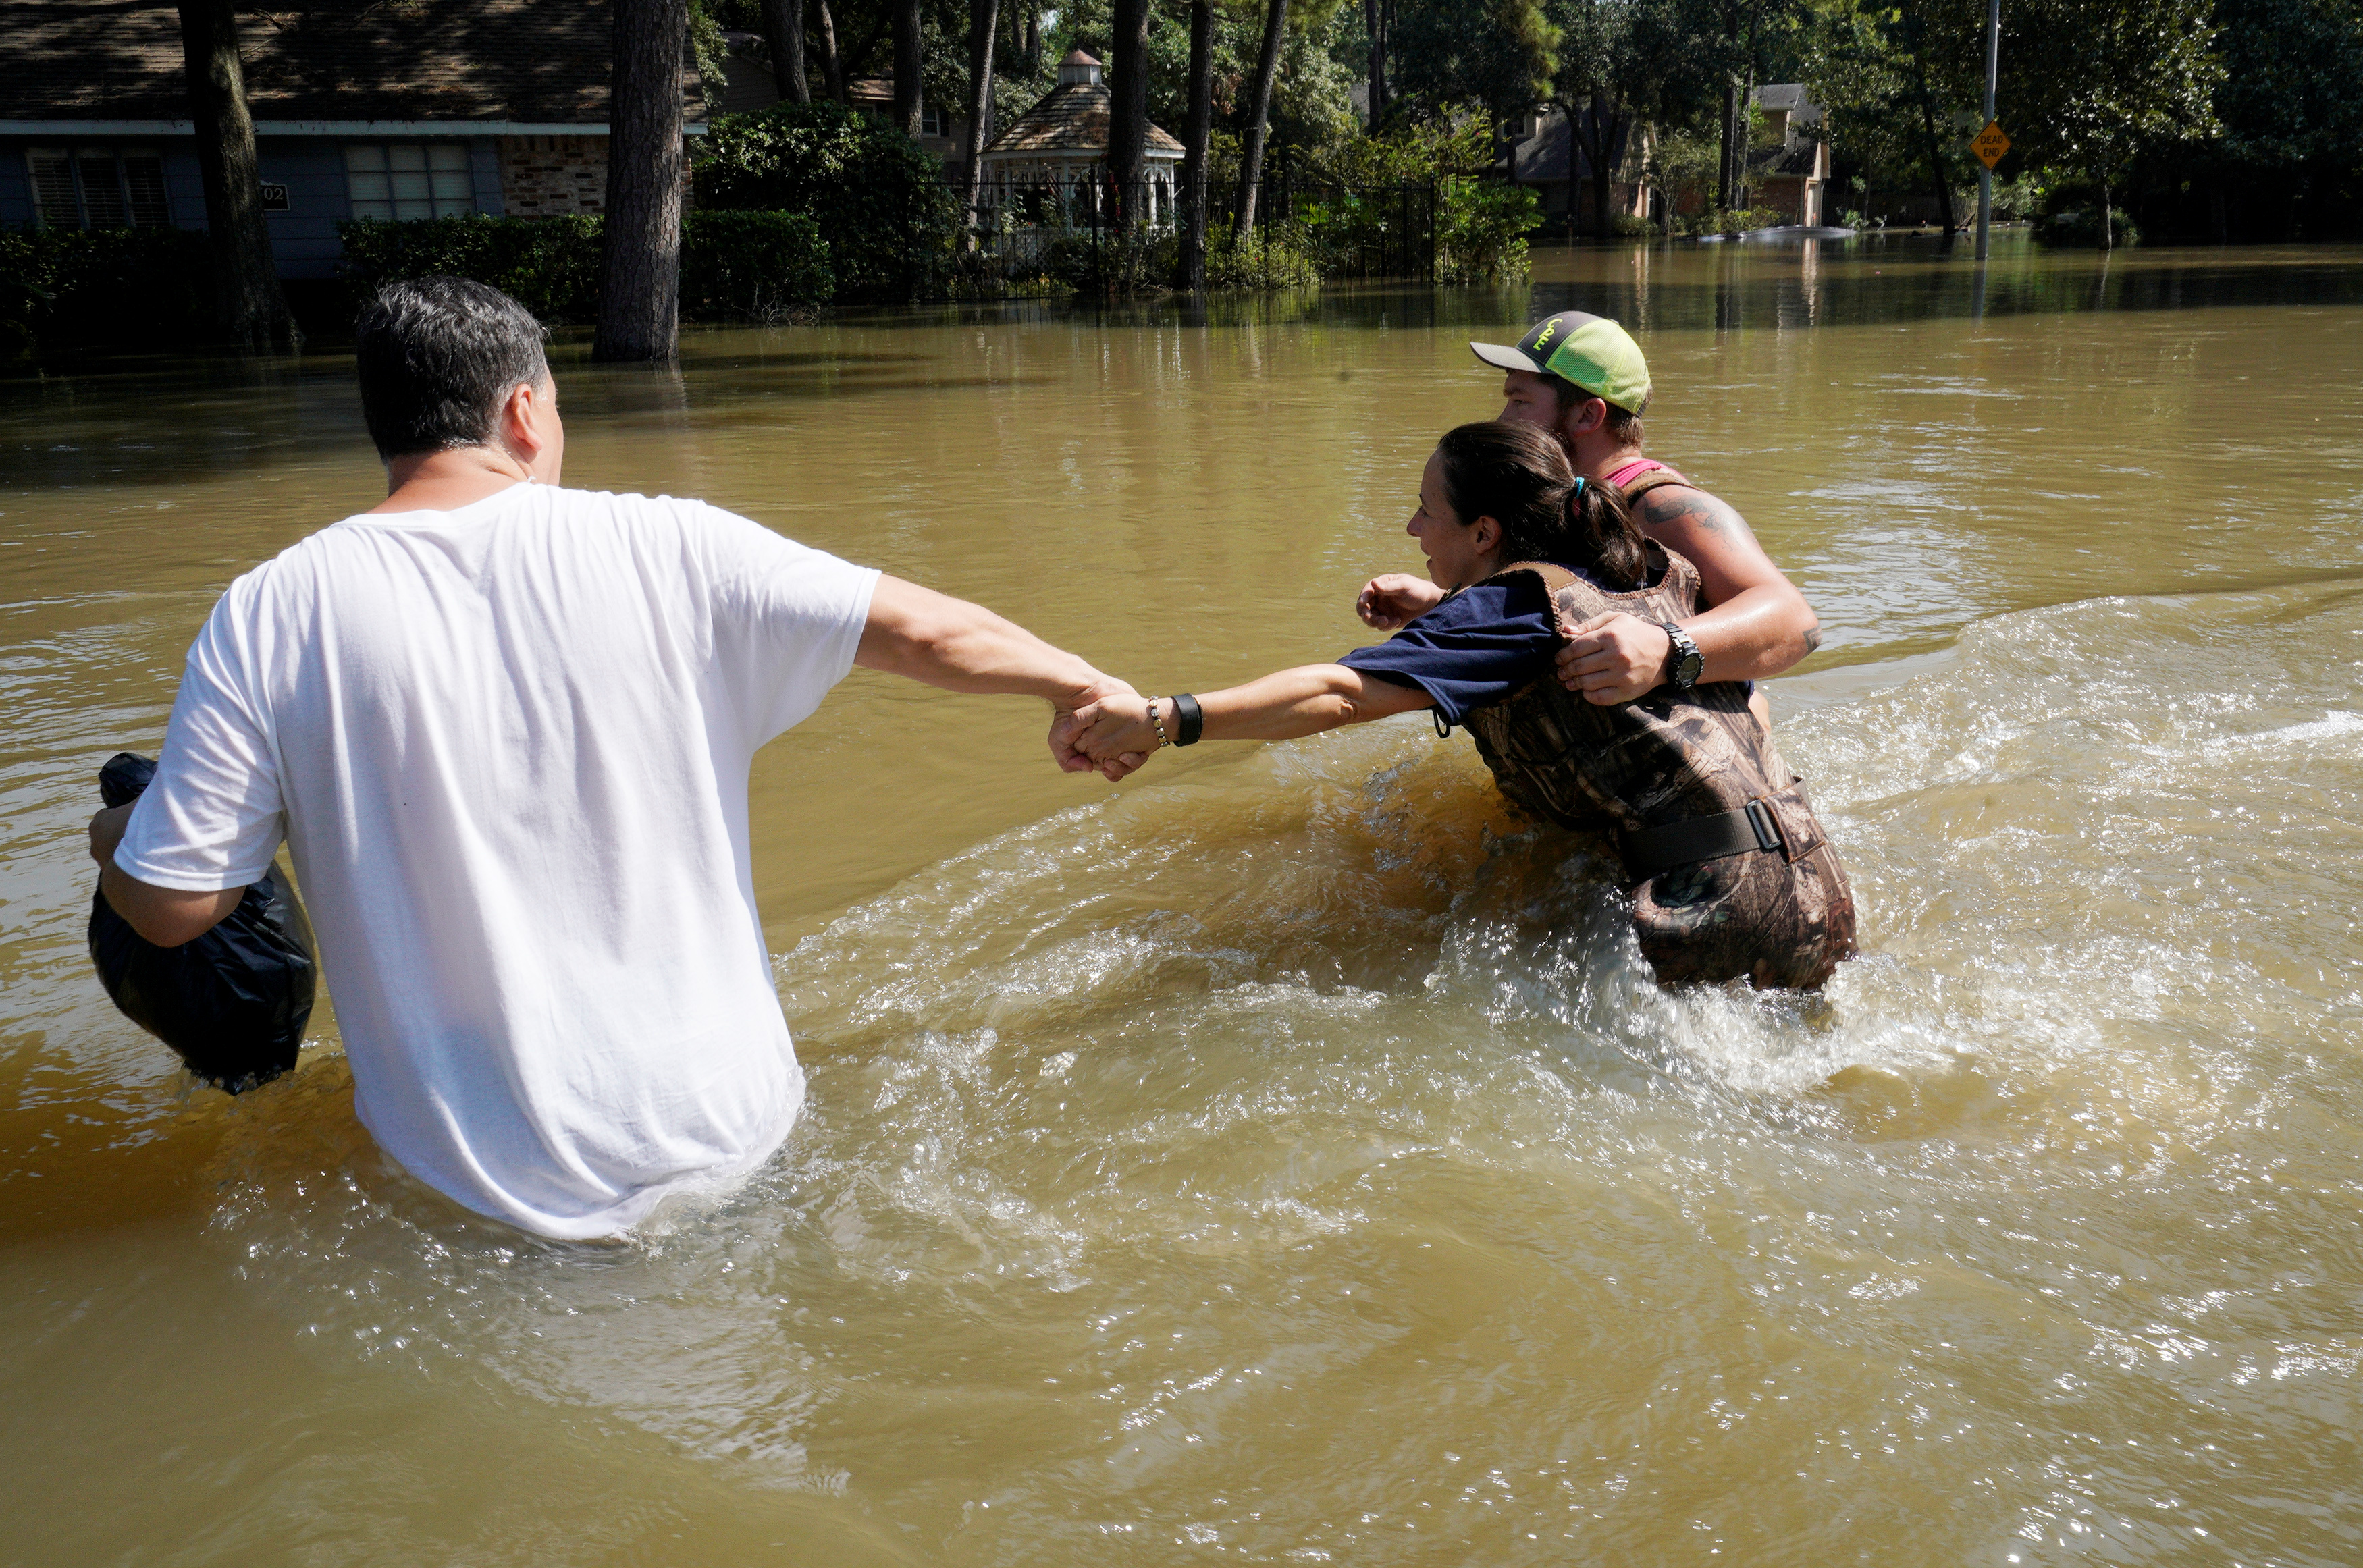 Melissa Ramirez (C) struggles against the current flowing down a flooded street helped by Edward Ramirez (L) and Cody Collinsworth as she tried to return to her home for the first time since Harvey floodwaters arrived in Houston, Texas, U.S. Sept. 1, 2017. (REUTERS/Rick Wilking)